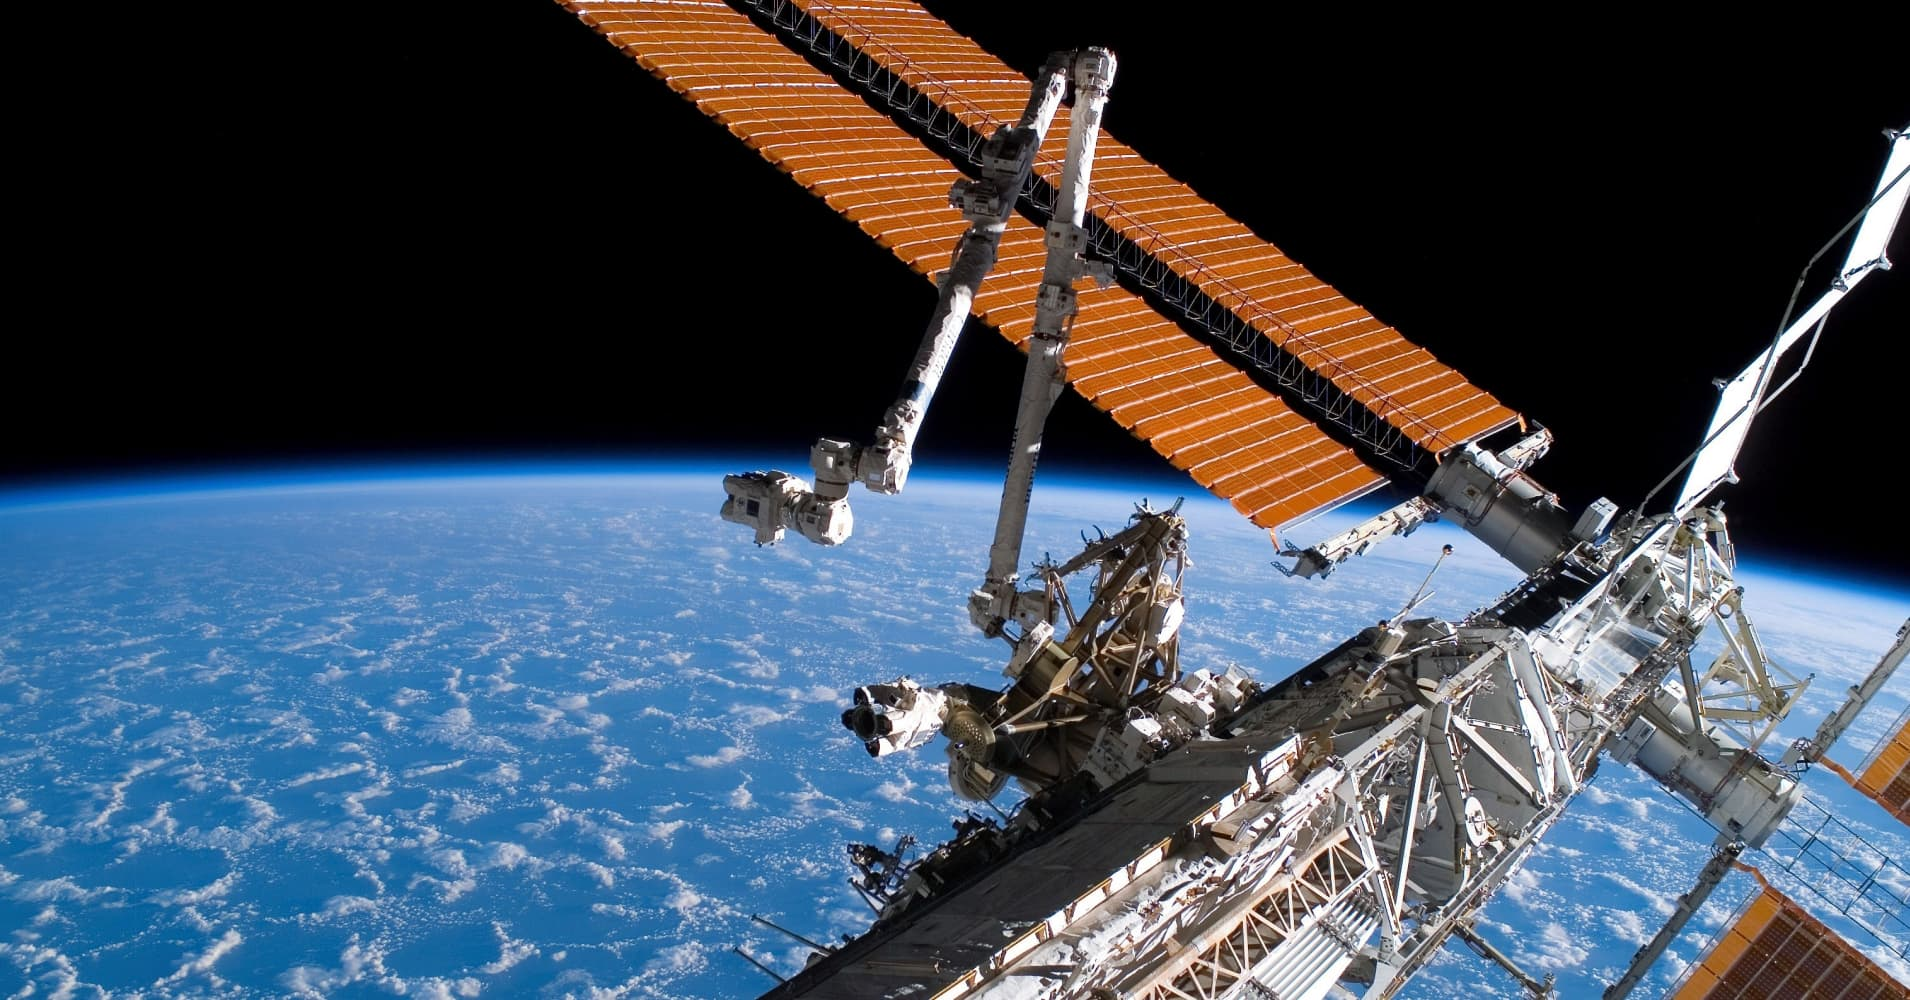 From space stations to factories: Five interesting ways that solar power is being harnessed